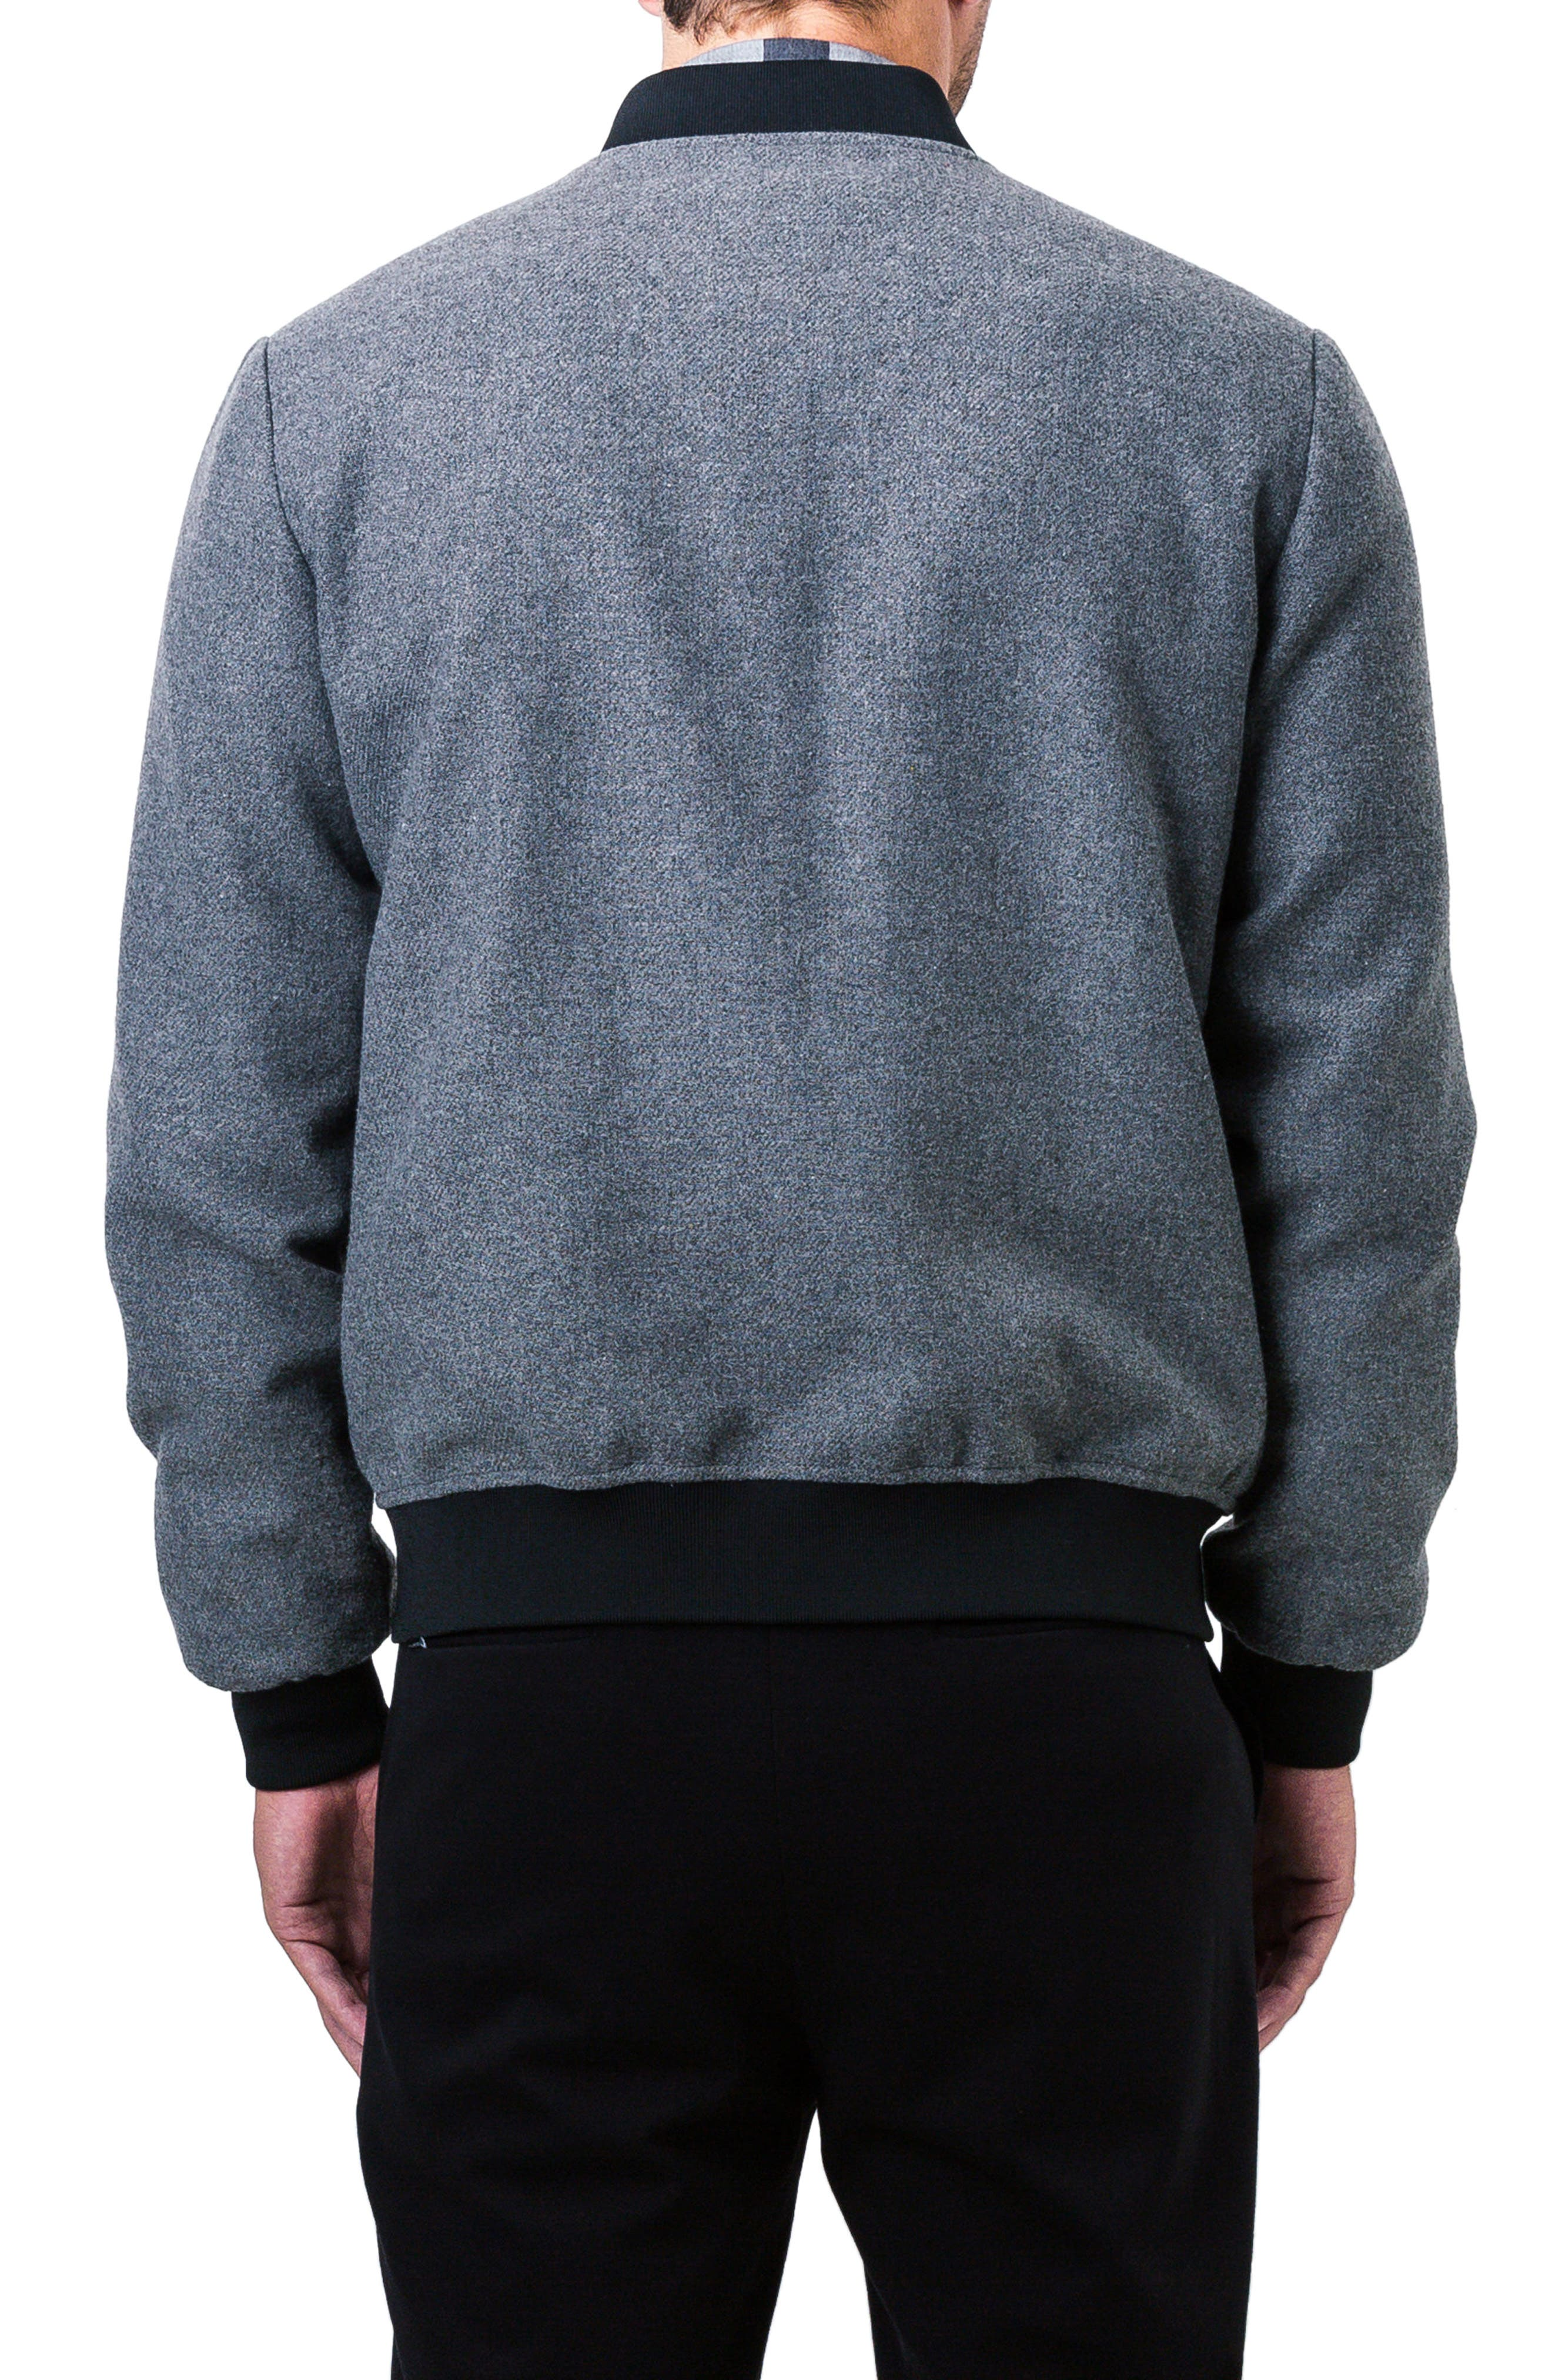 Aether Bomber Jacket,                             Alternate thumbnail 5, color,